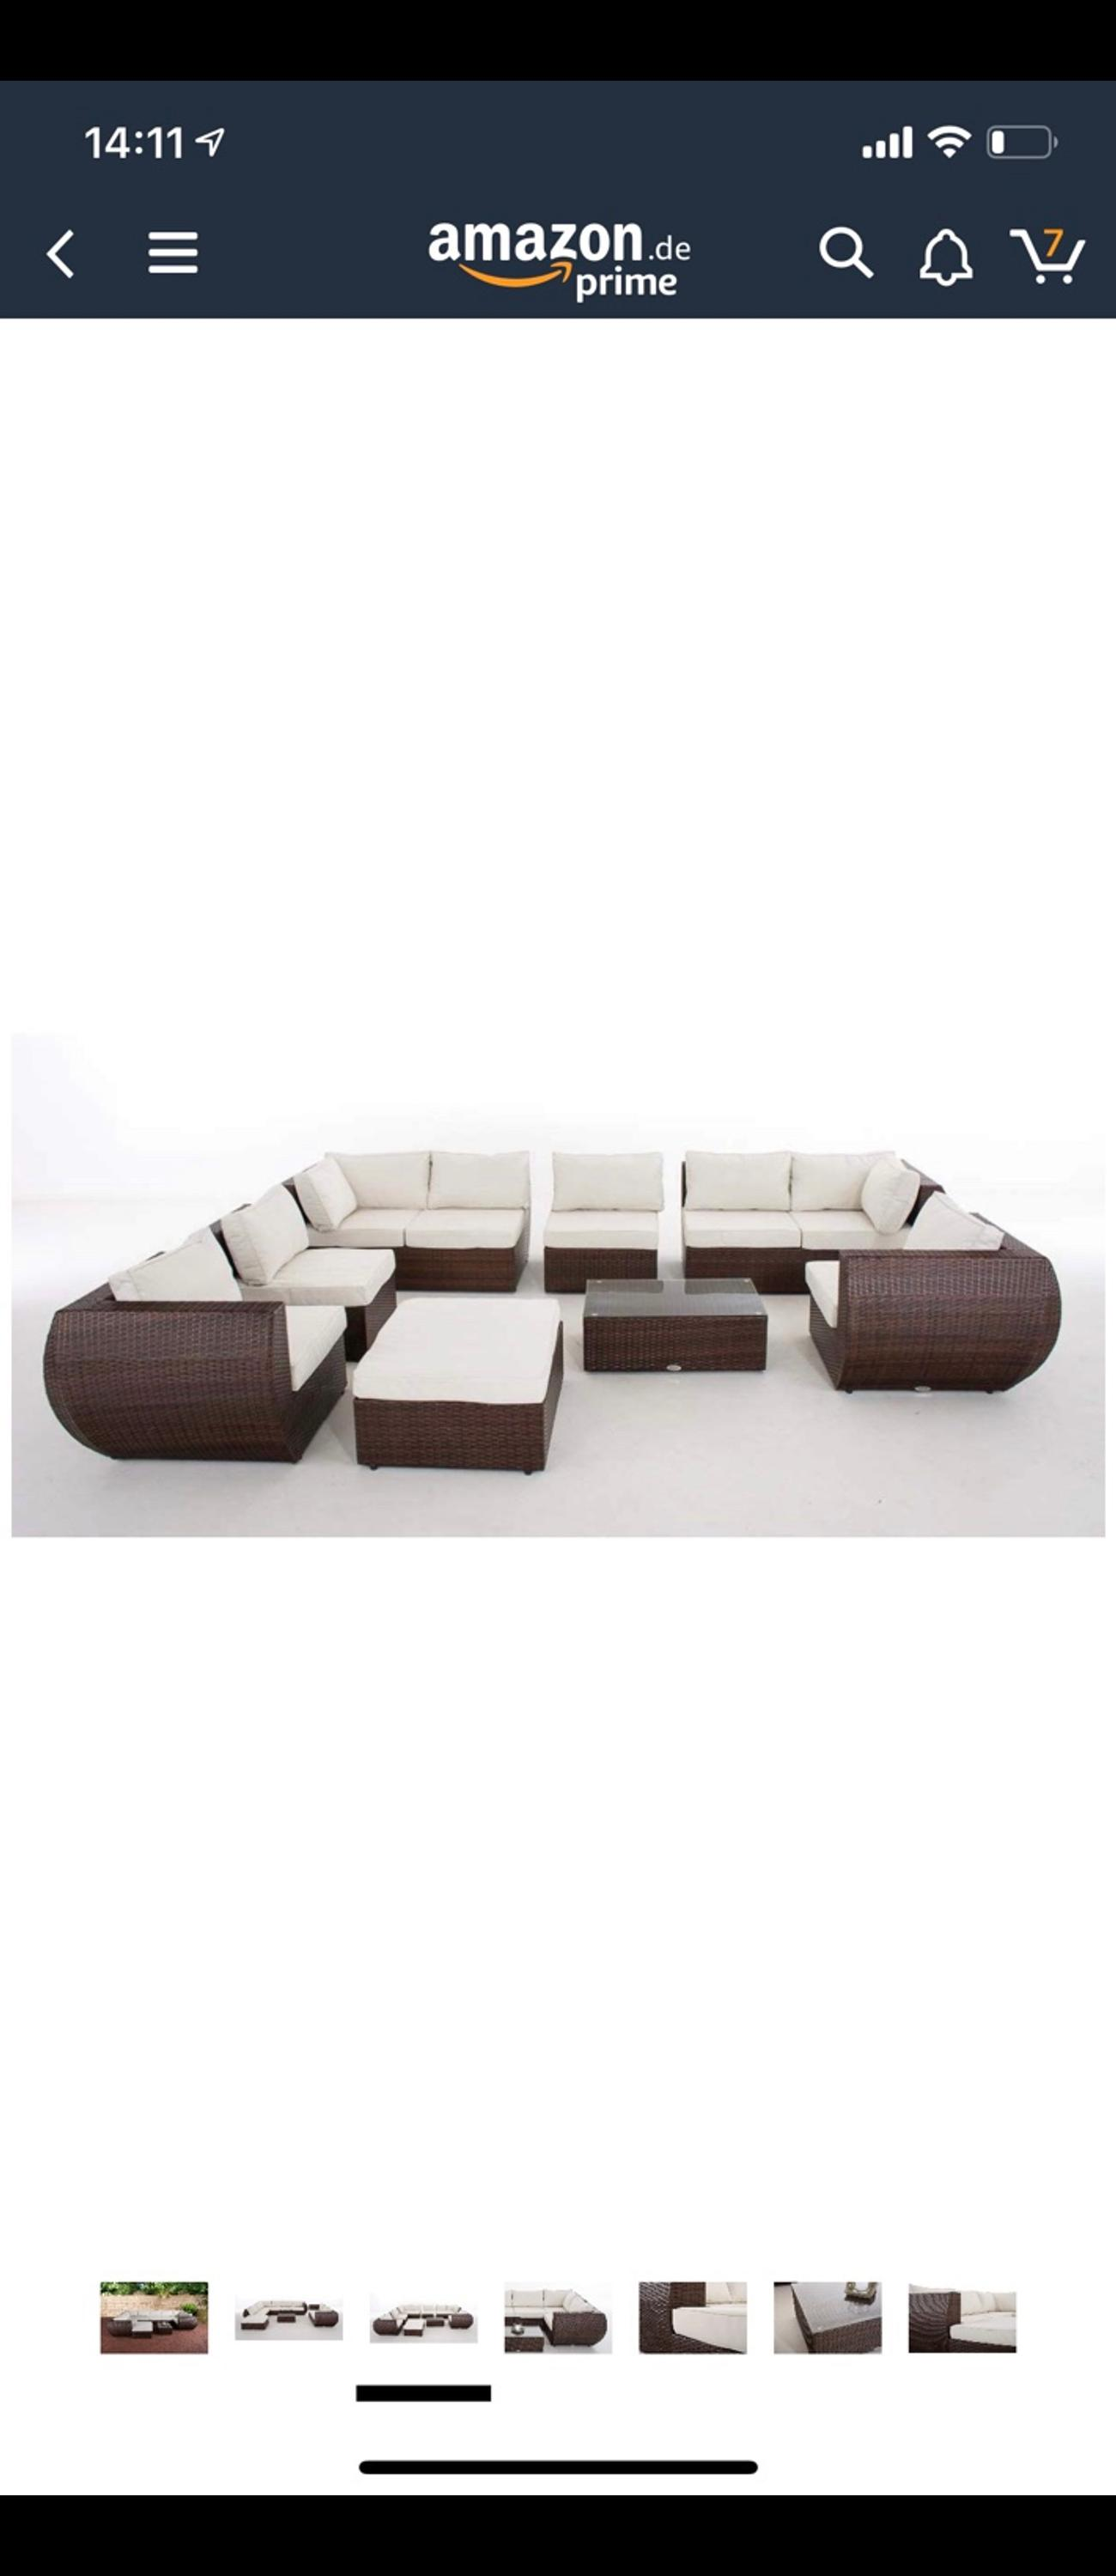 Rattanmöbel 24 Rattan Chill Out Lounge Xxl In 8970 Schladming For 599 00 For